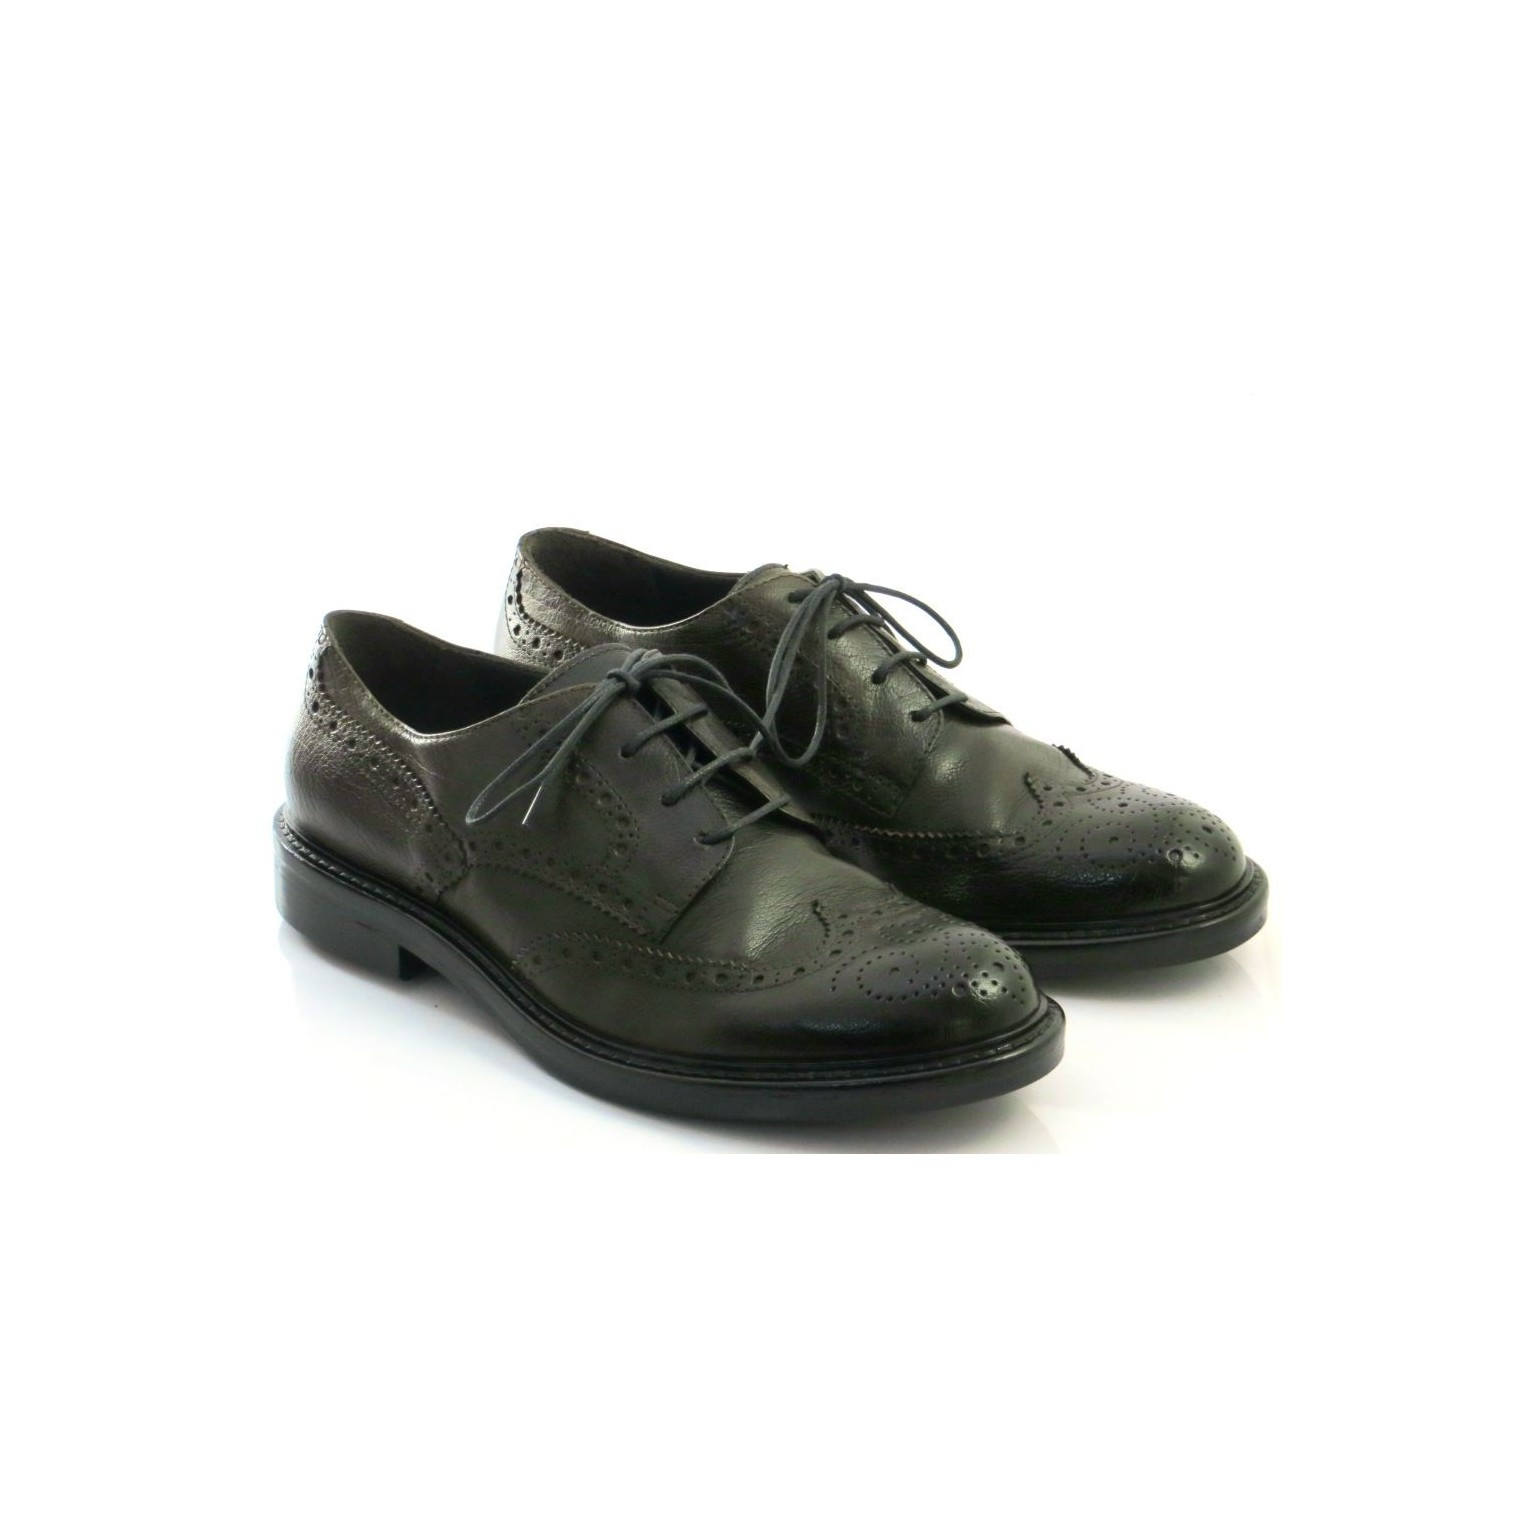 free shipping 2339b d154c Hundred/100 Men's Classic Shoes Smoke Bufalo Leather M681-32i